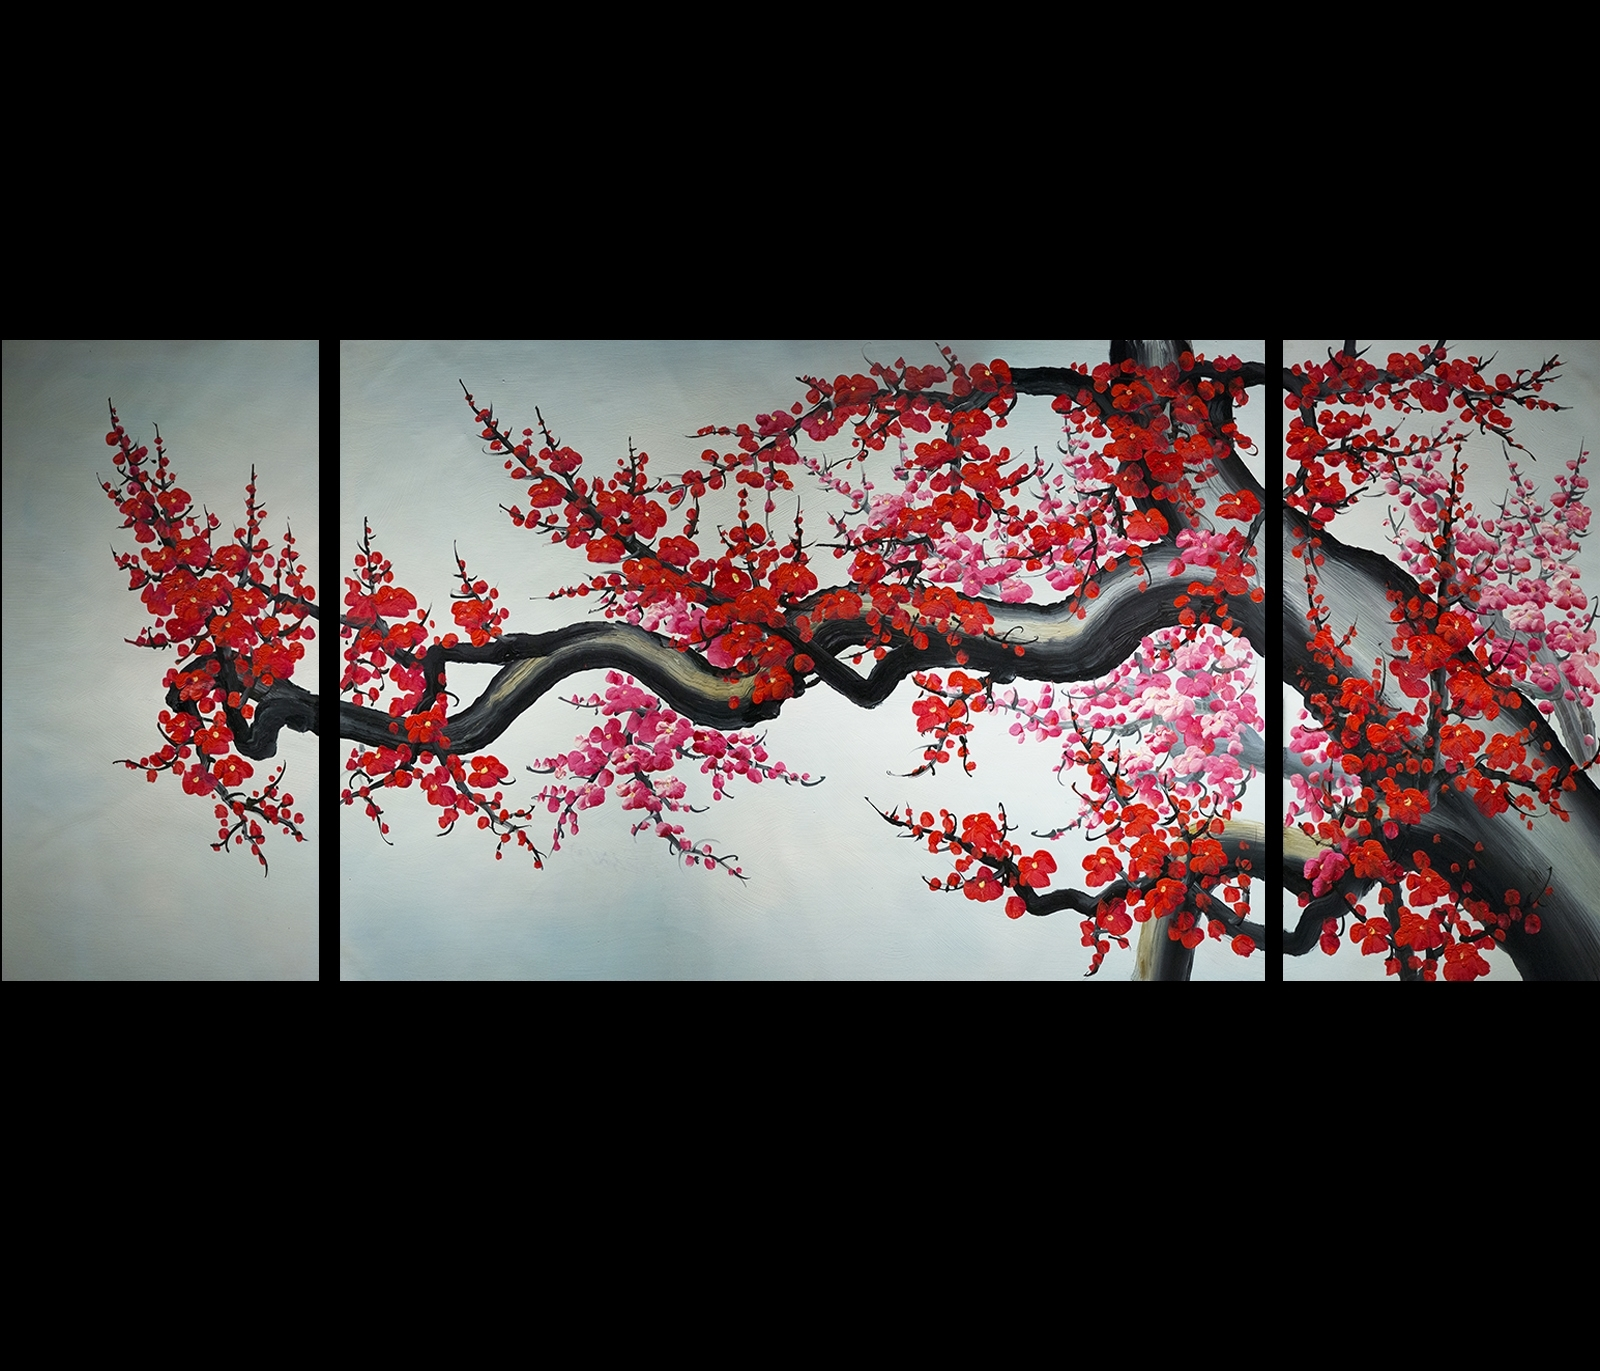 Cherry Blossom Painting | Feng Shui | Pinterest | Cherry Blossom Intended For Most Popular Cherry Blossom Oil Painting Modern Abstract Wall Art (View 4 of 20)